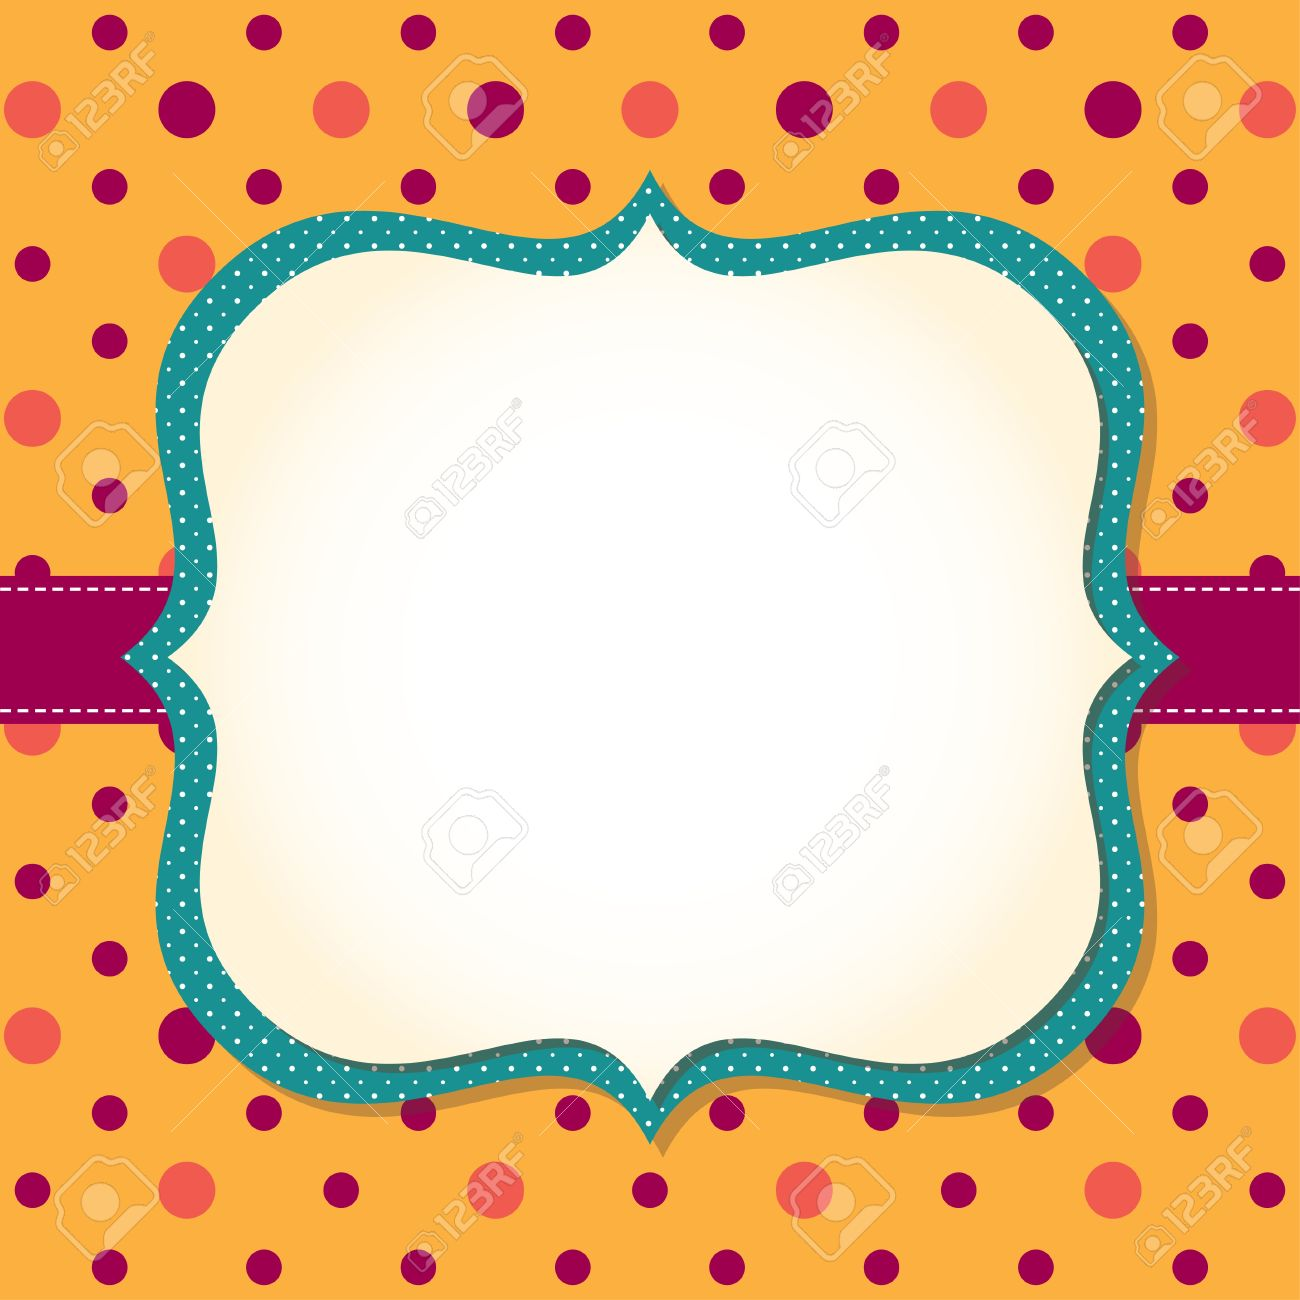 Cute Frame Background Royalty Free Cliparts, Vectors, And Stock ...